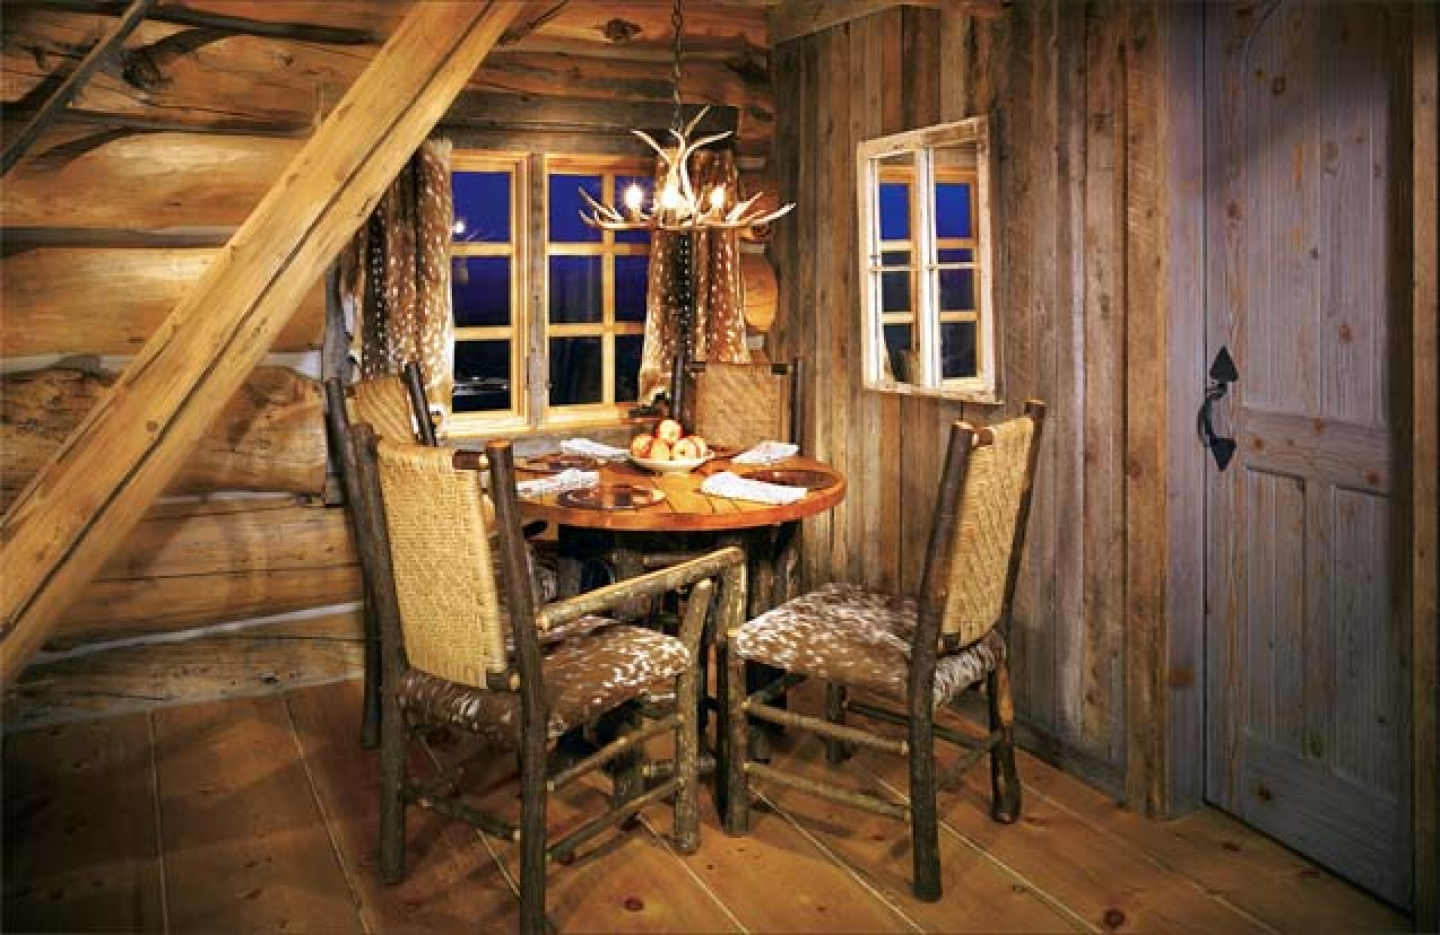 Rustic log cabin art design and ideas for Rustic cabin designs